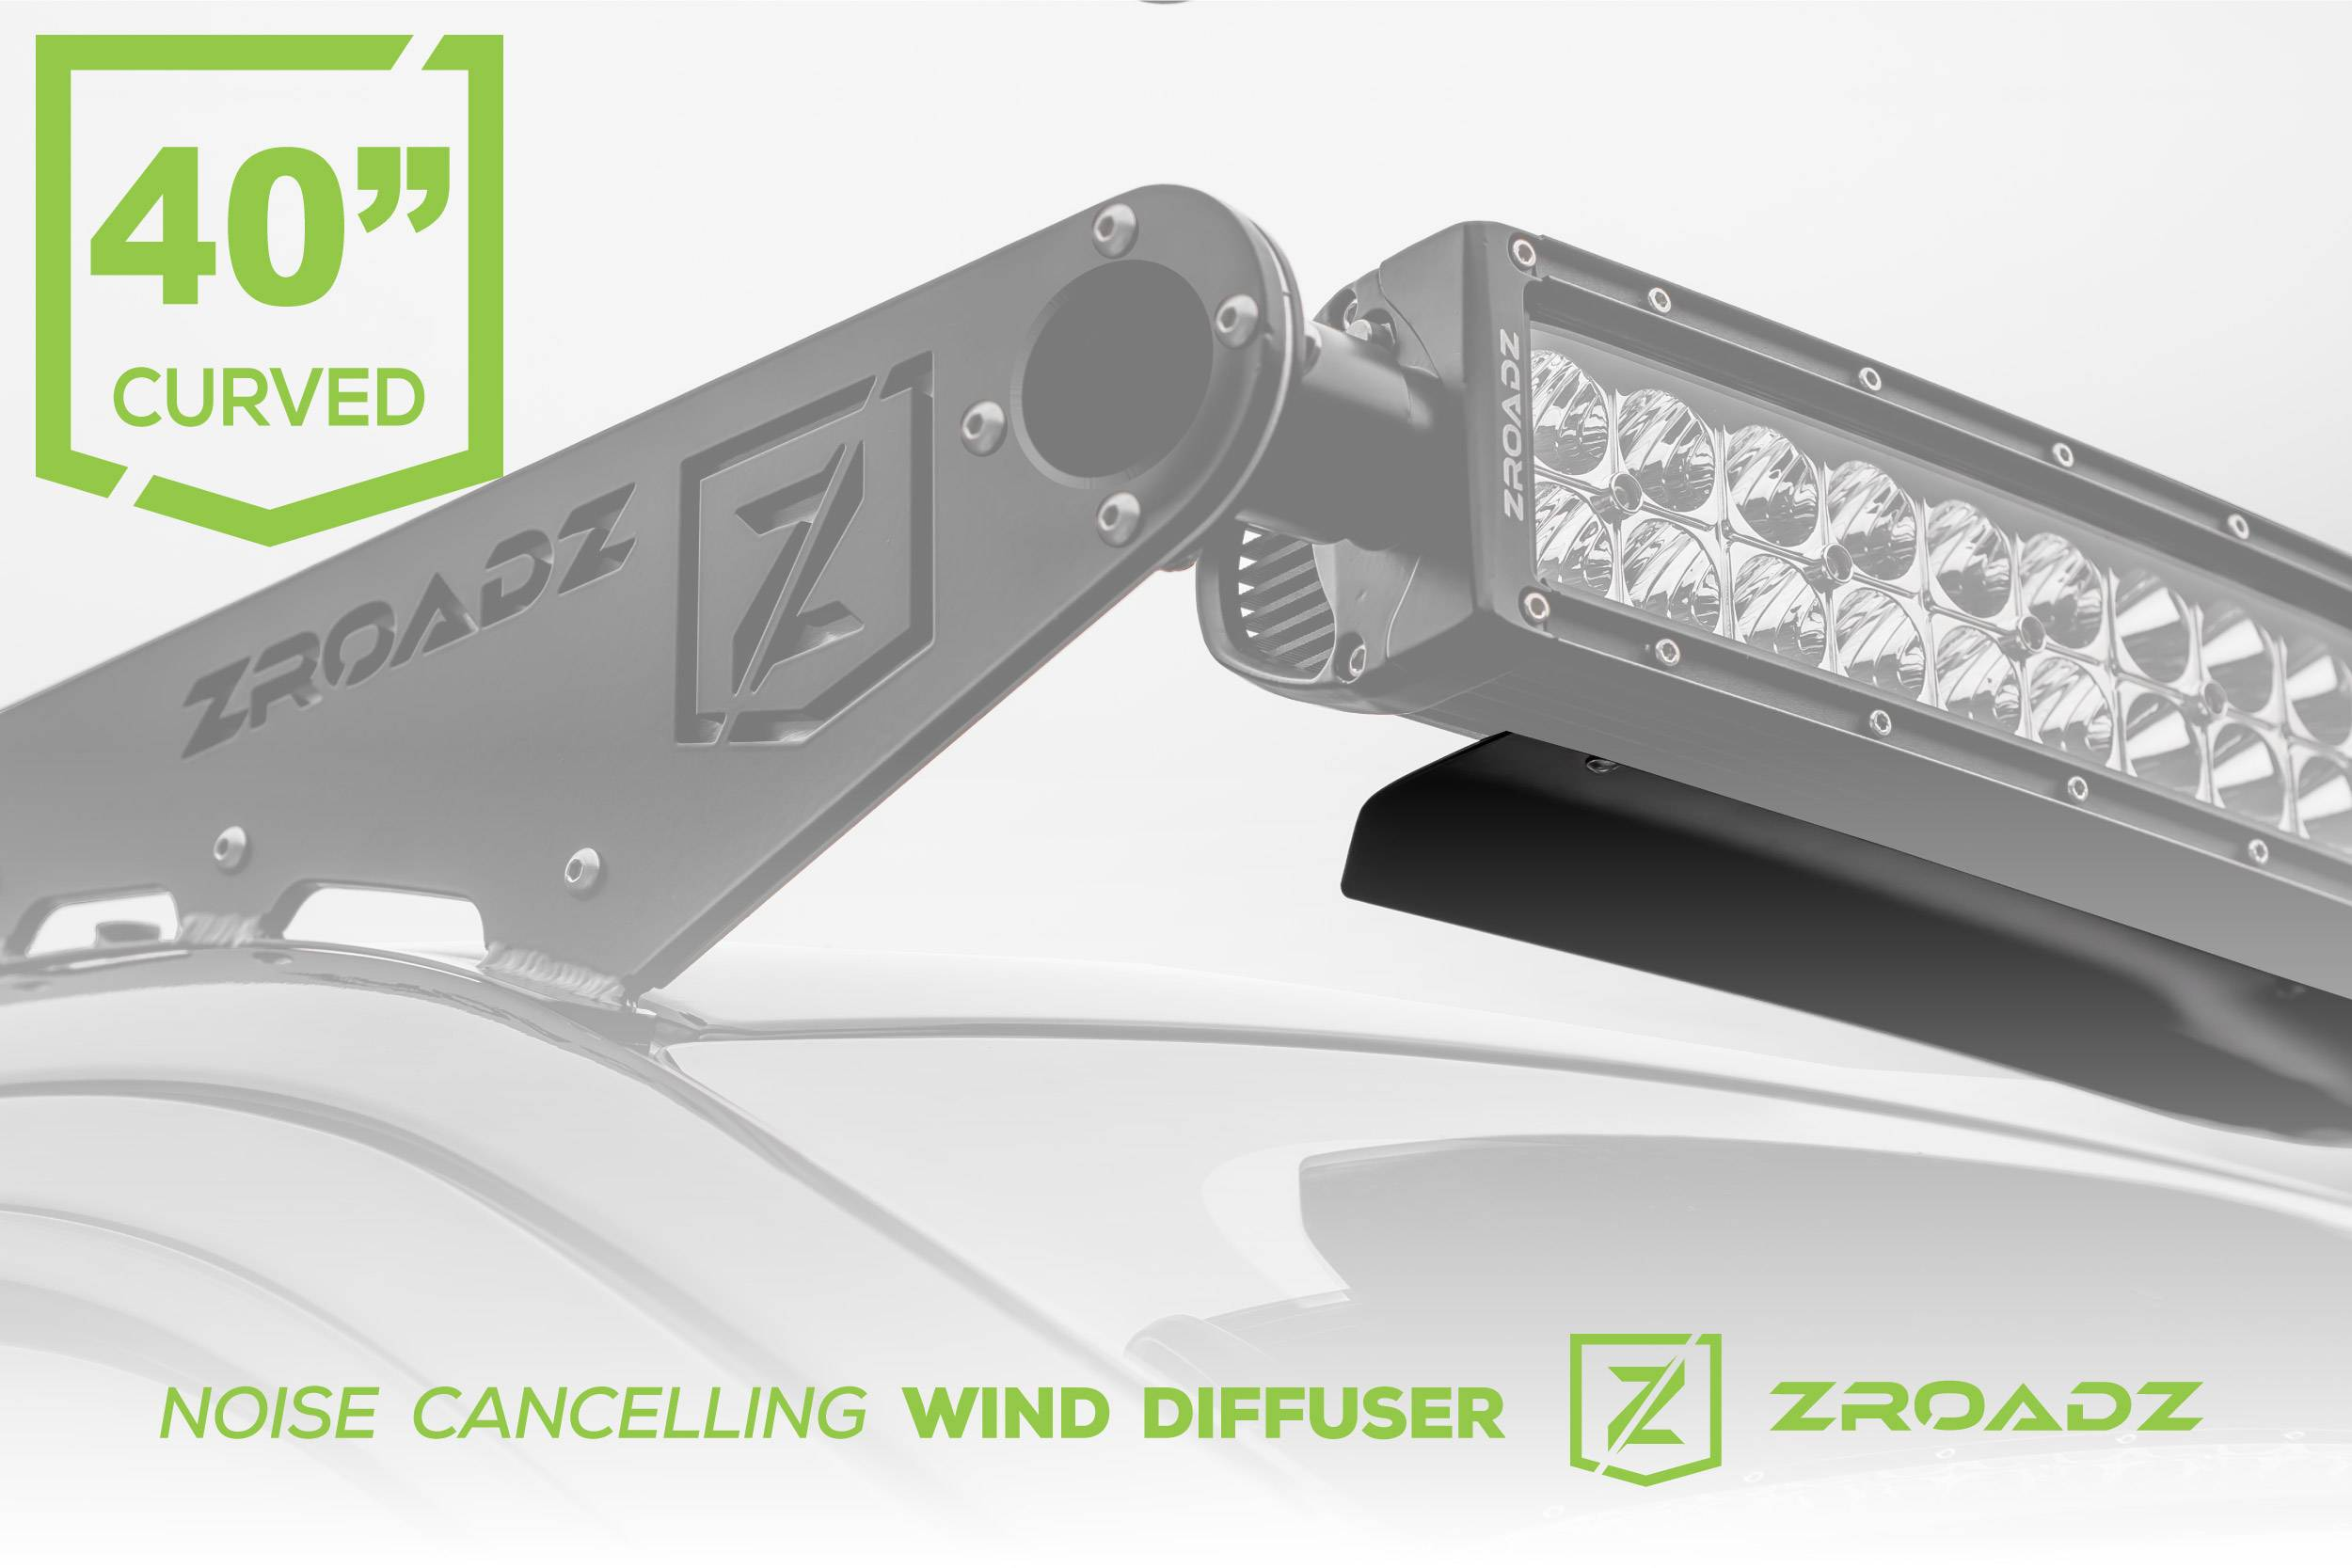 Noise Cancelling Wind Diffuser For 1 40 Inch Curved Led